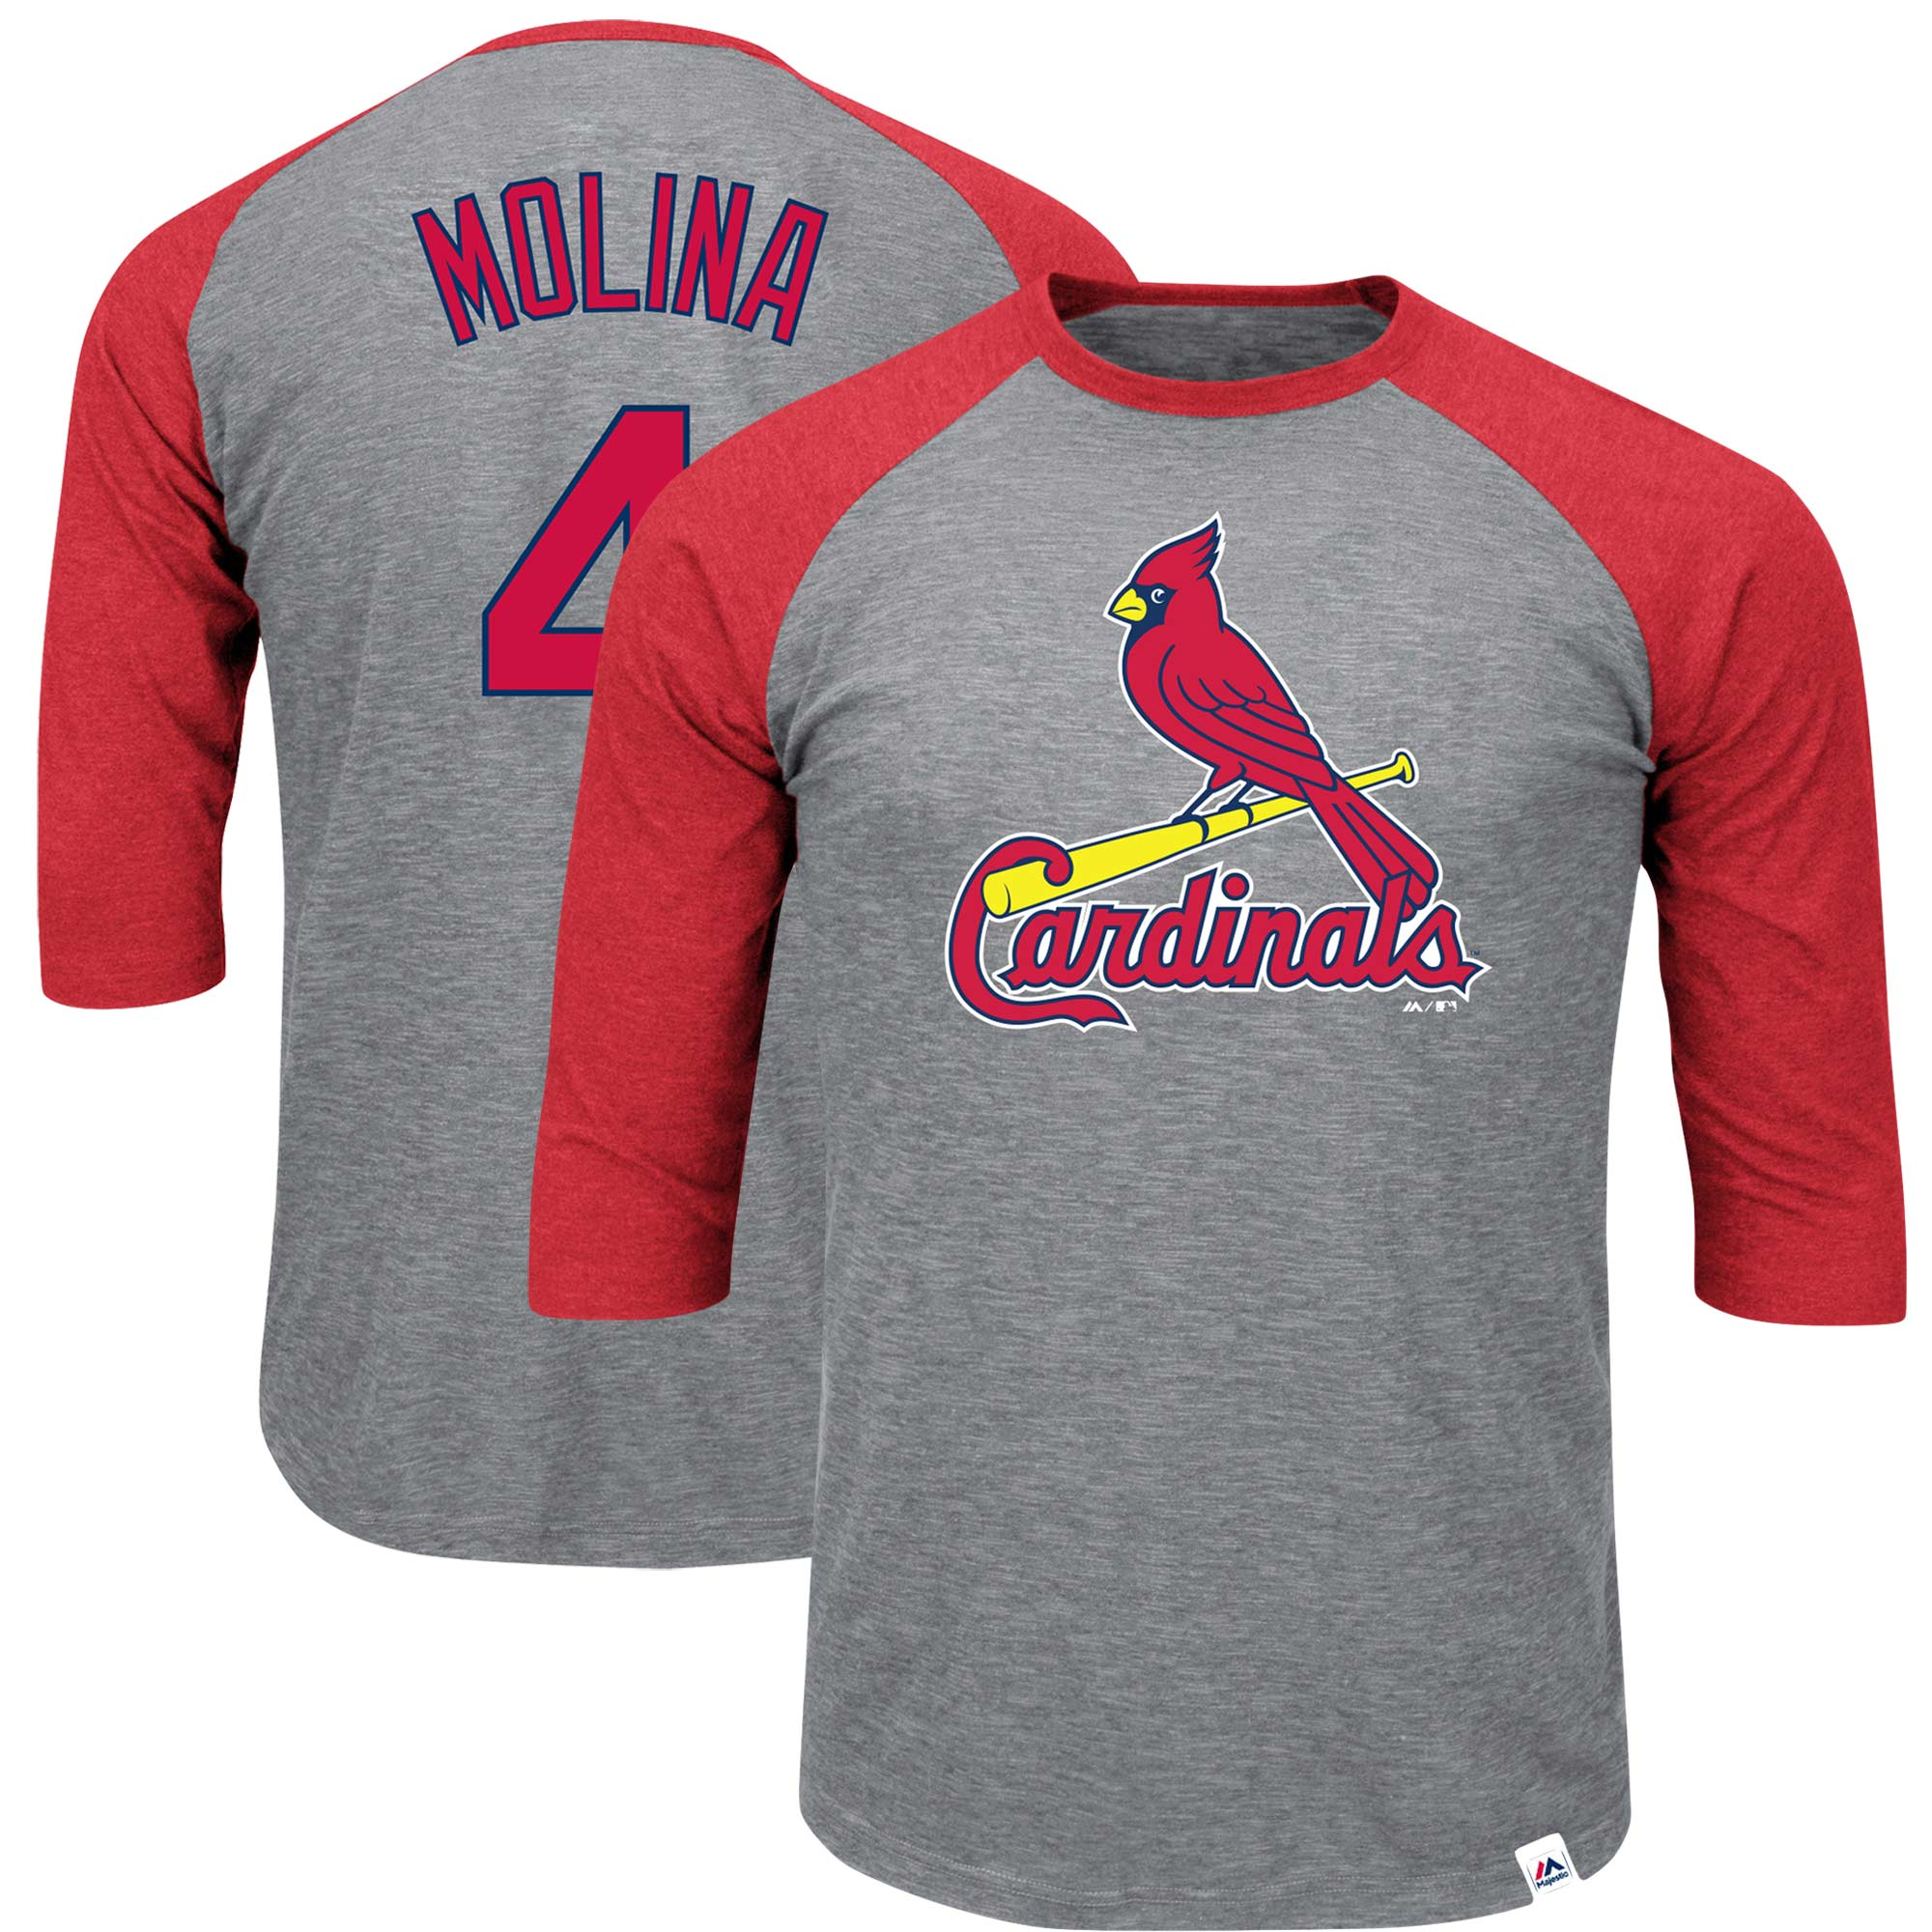 Yadier Molina St. Louis Cardinals Majestic Big & Tall Player Raglan 3/4-Sleeve T-Shirt - Heathered Gray/Red